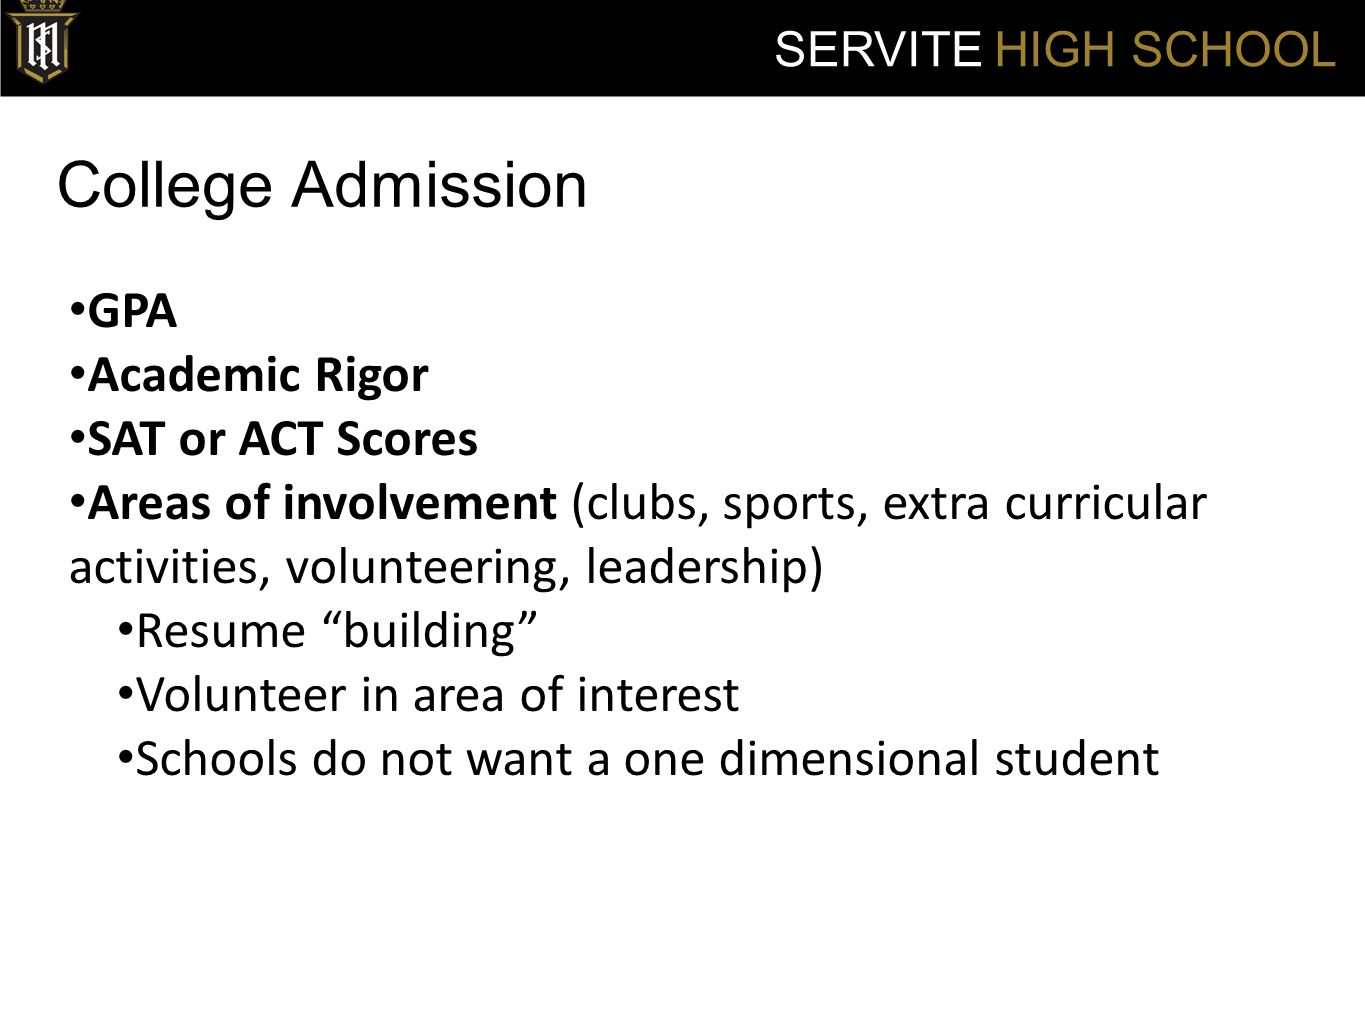 College Admission SERVITE HIGH SCHOOL GPA Academic Rigor SAT or ACT Scores Areas of involvement (clubs, sports, extra curricular activities, volunteering, leadership) Resume building Volunteer in area of interest Schools do not want a one dimensional student